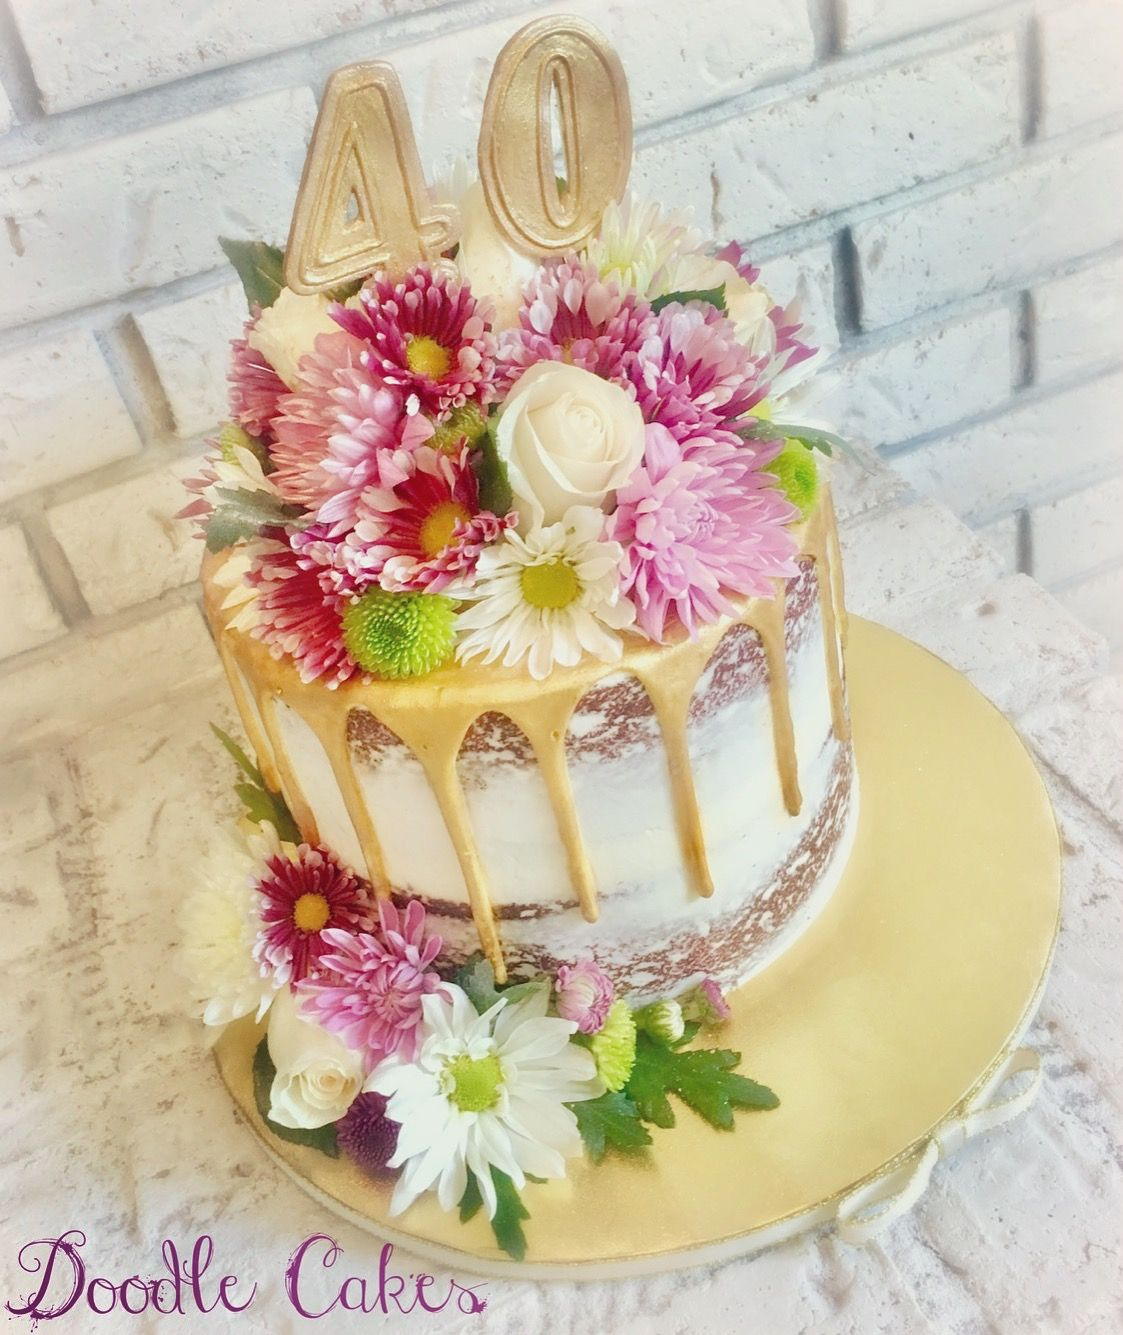 Elegant 40th Birthday Cake With Fresh Flowers And Gold Drip